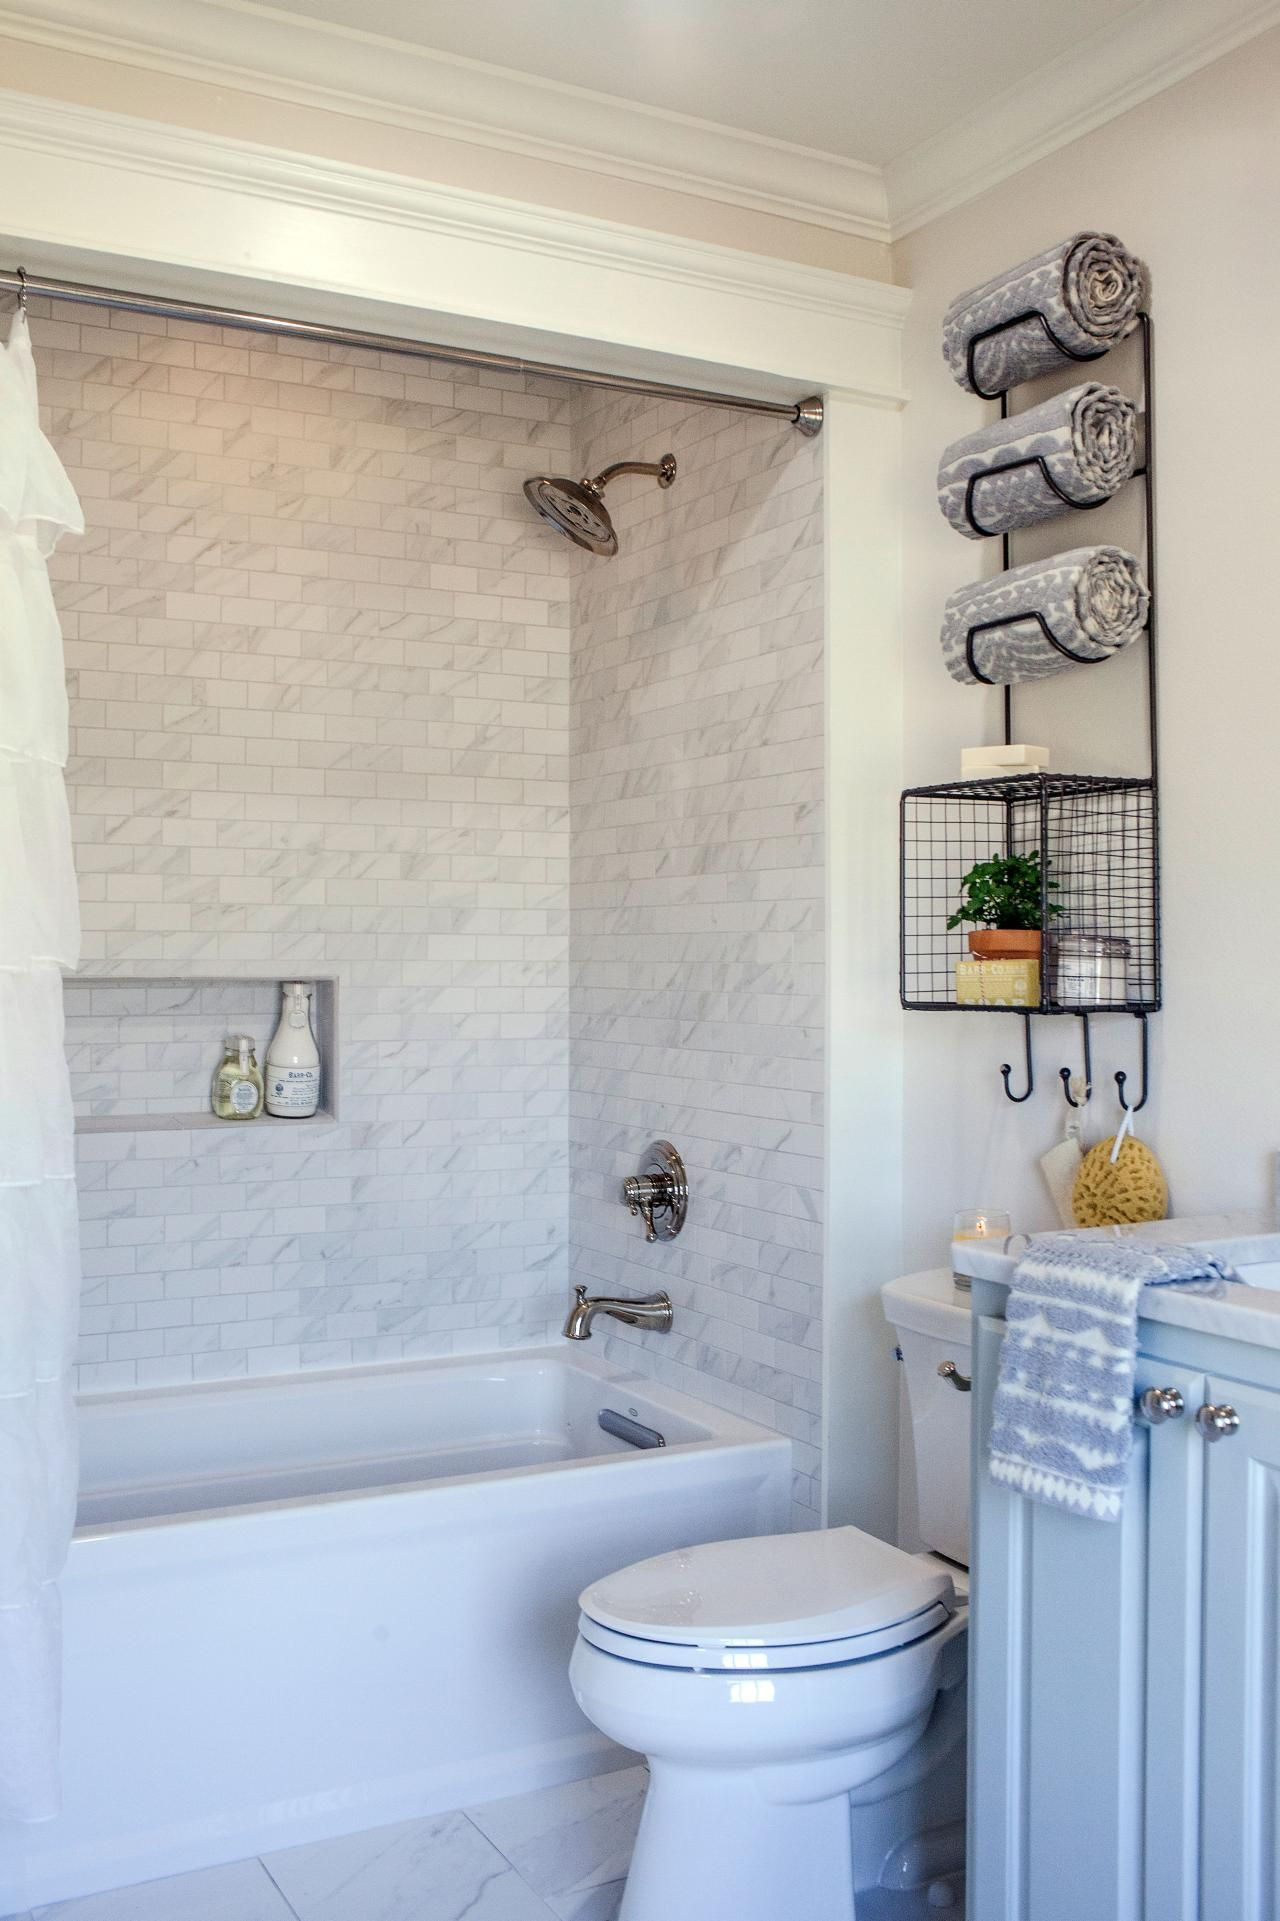 Find The Best Of Fixer Upper From Hgtv Inexpensive Bathroom Remodel Bathroom Remodel Designs Small Master Bathroom